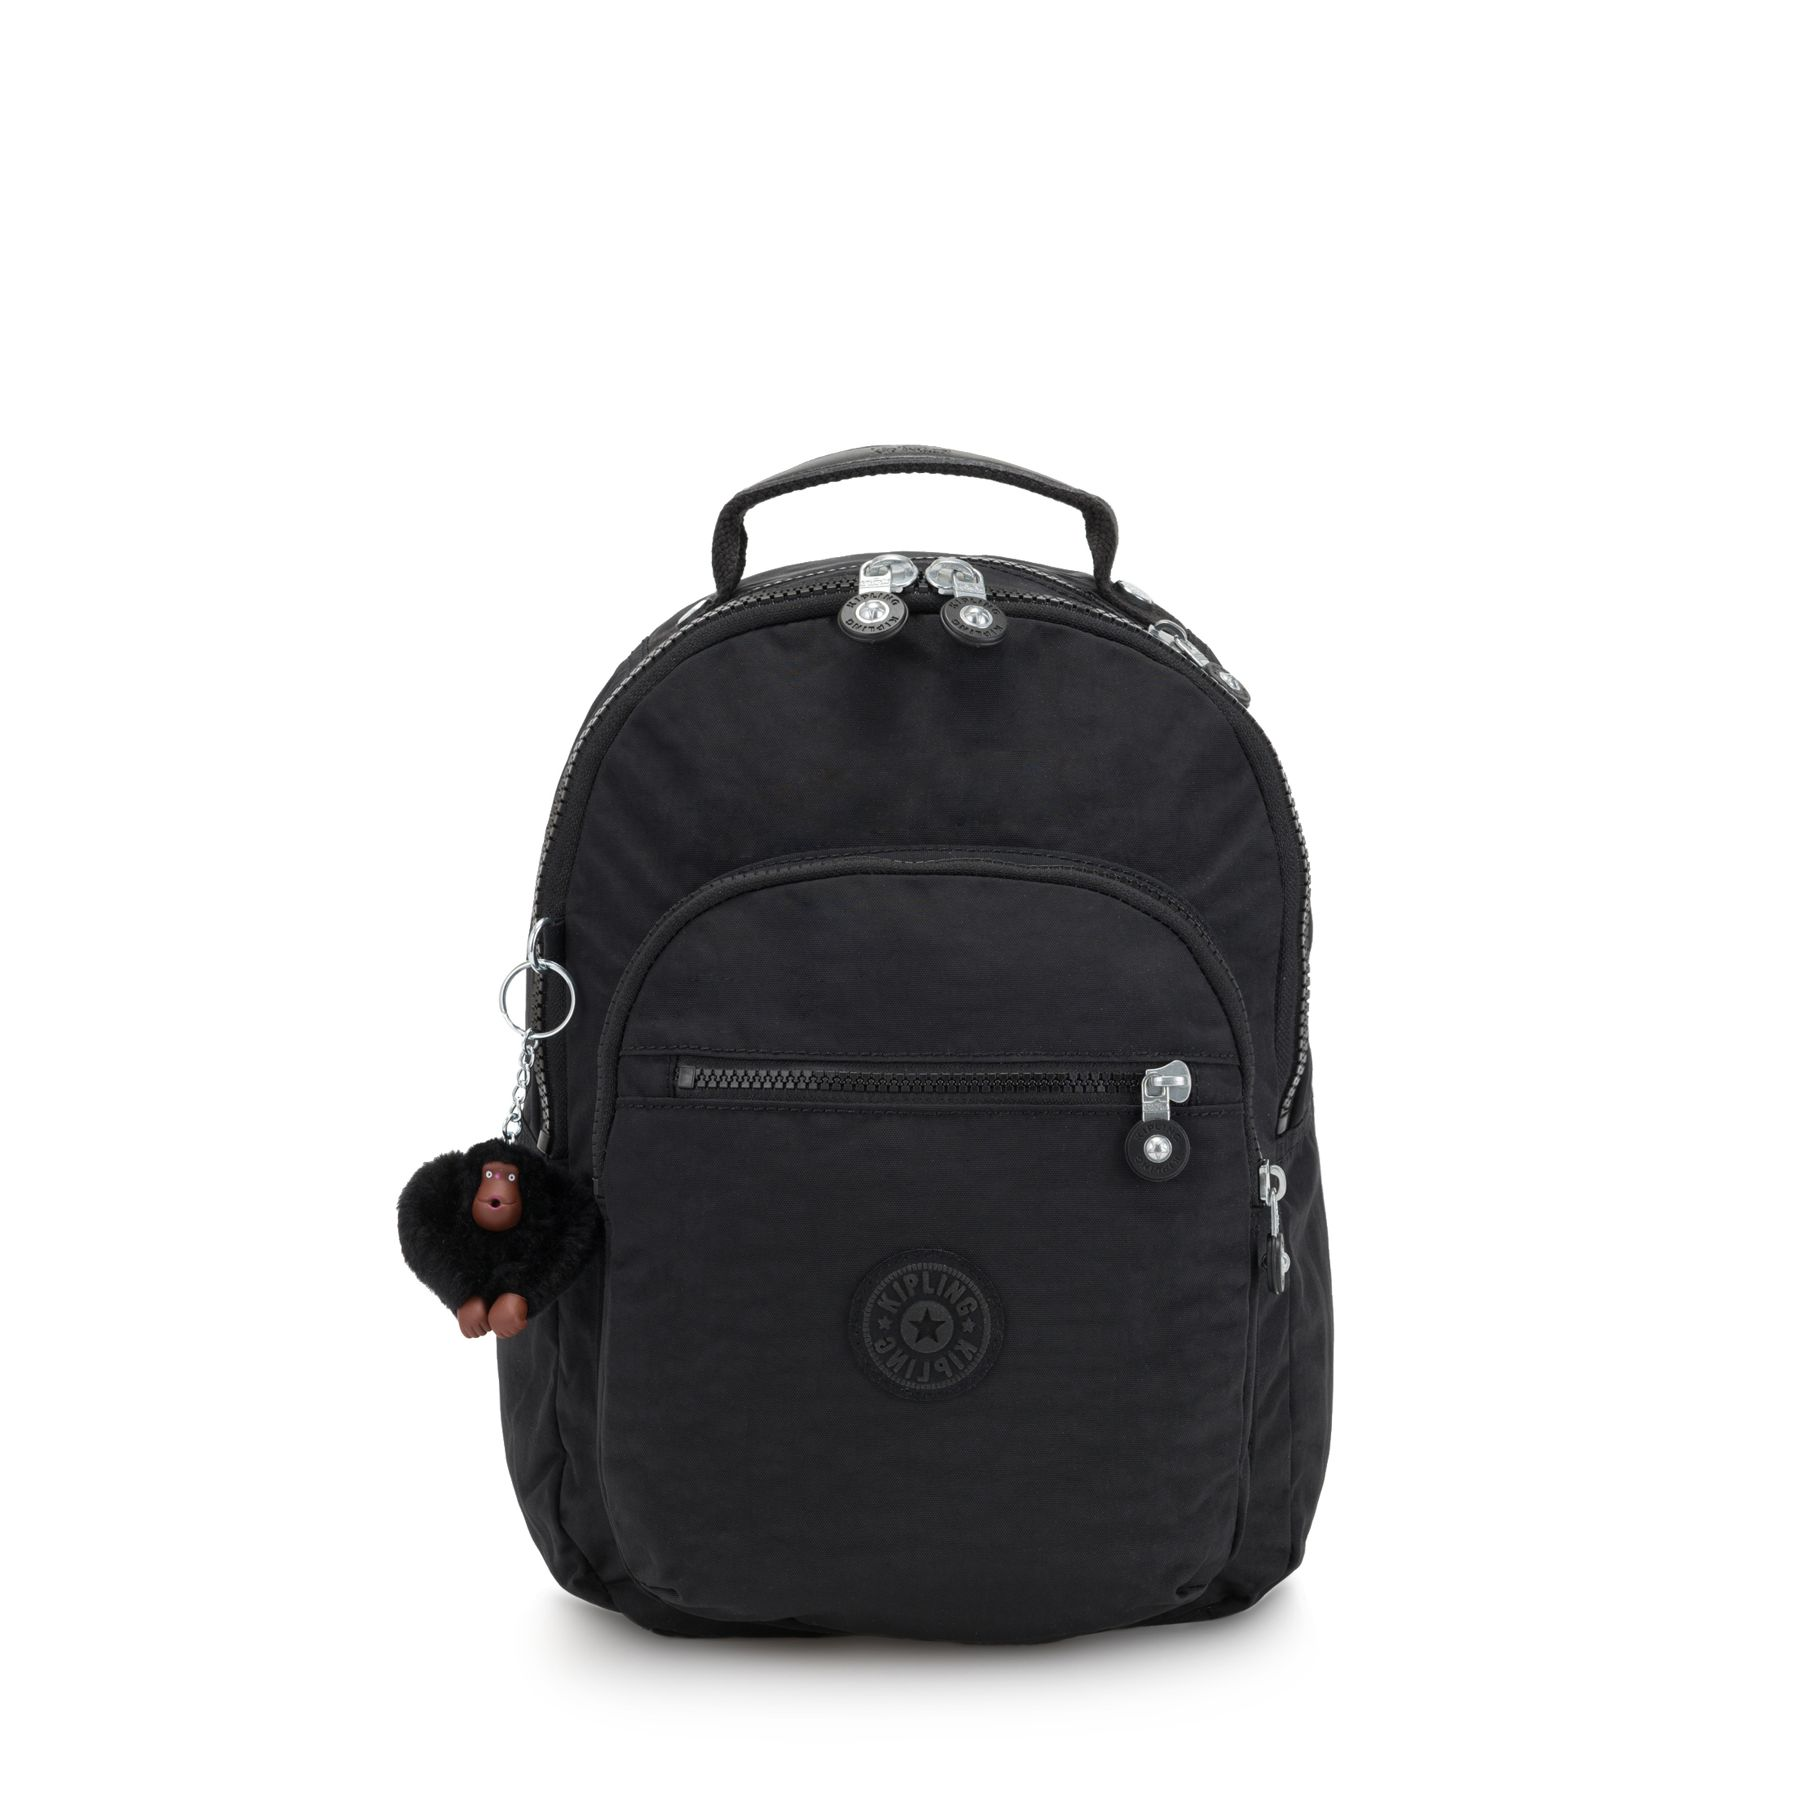 CLAS SEOUL S BACKPACKS by Kipling - Front view